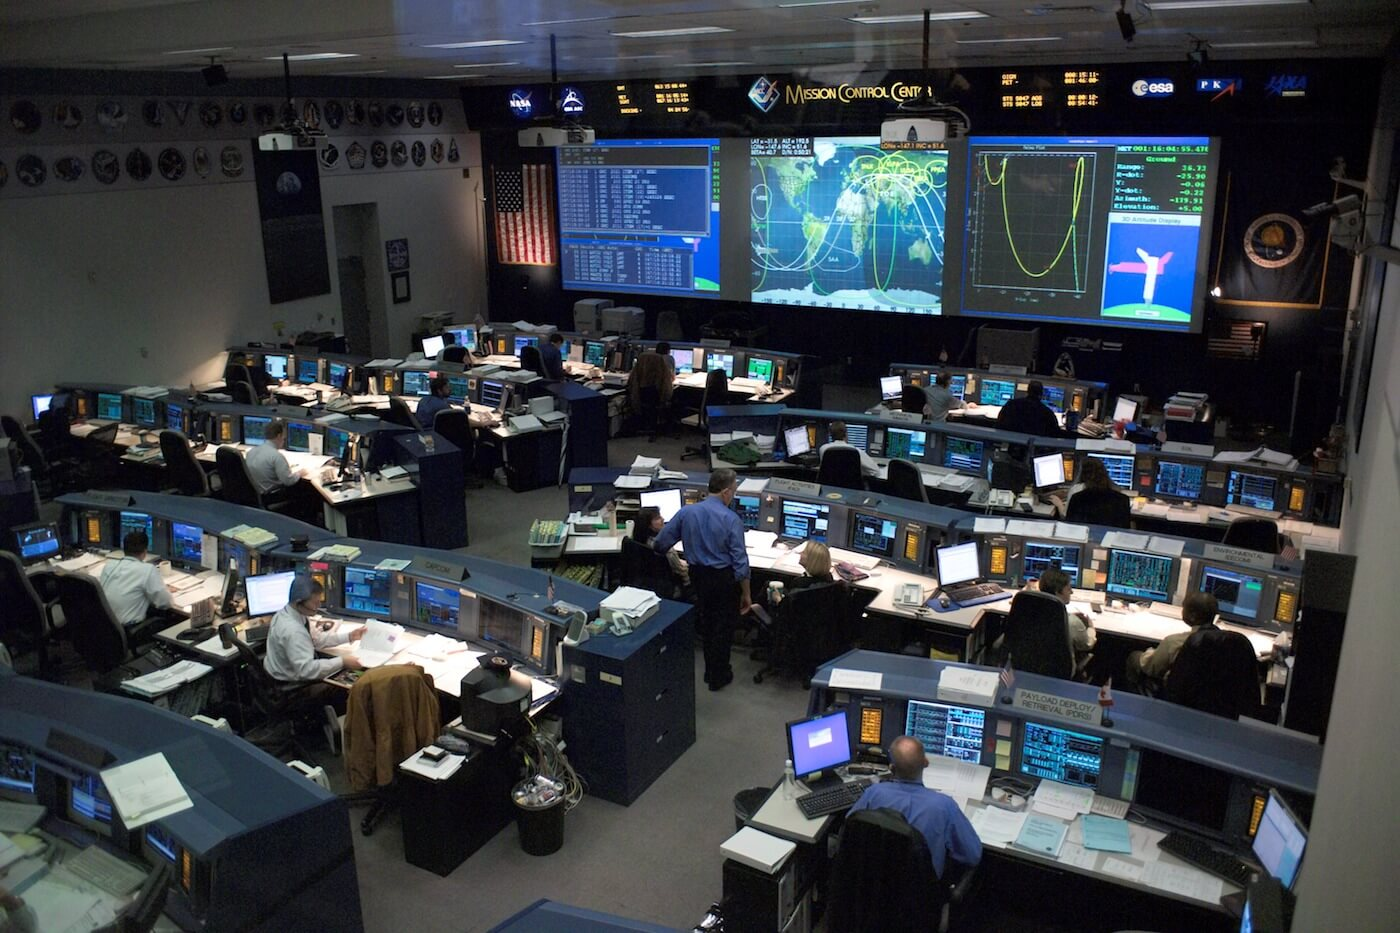 nasa-mission-control-center-monitoring